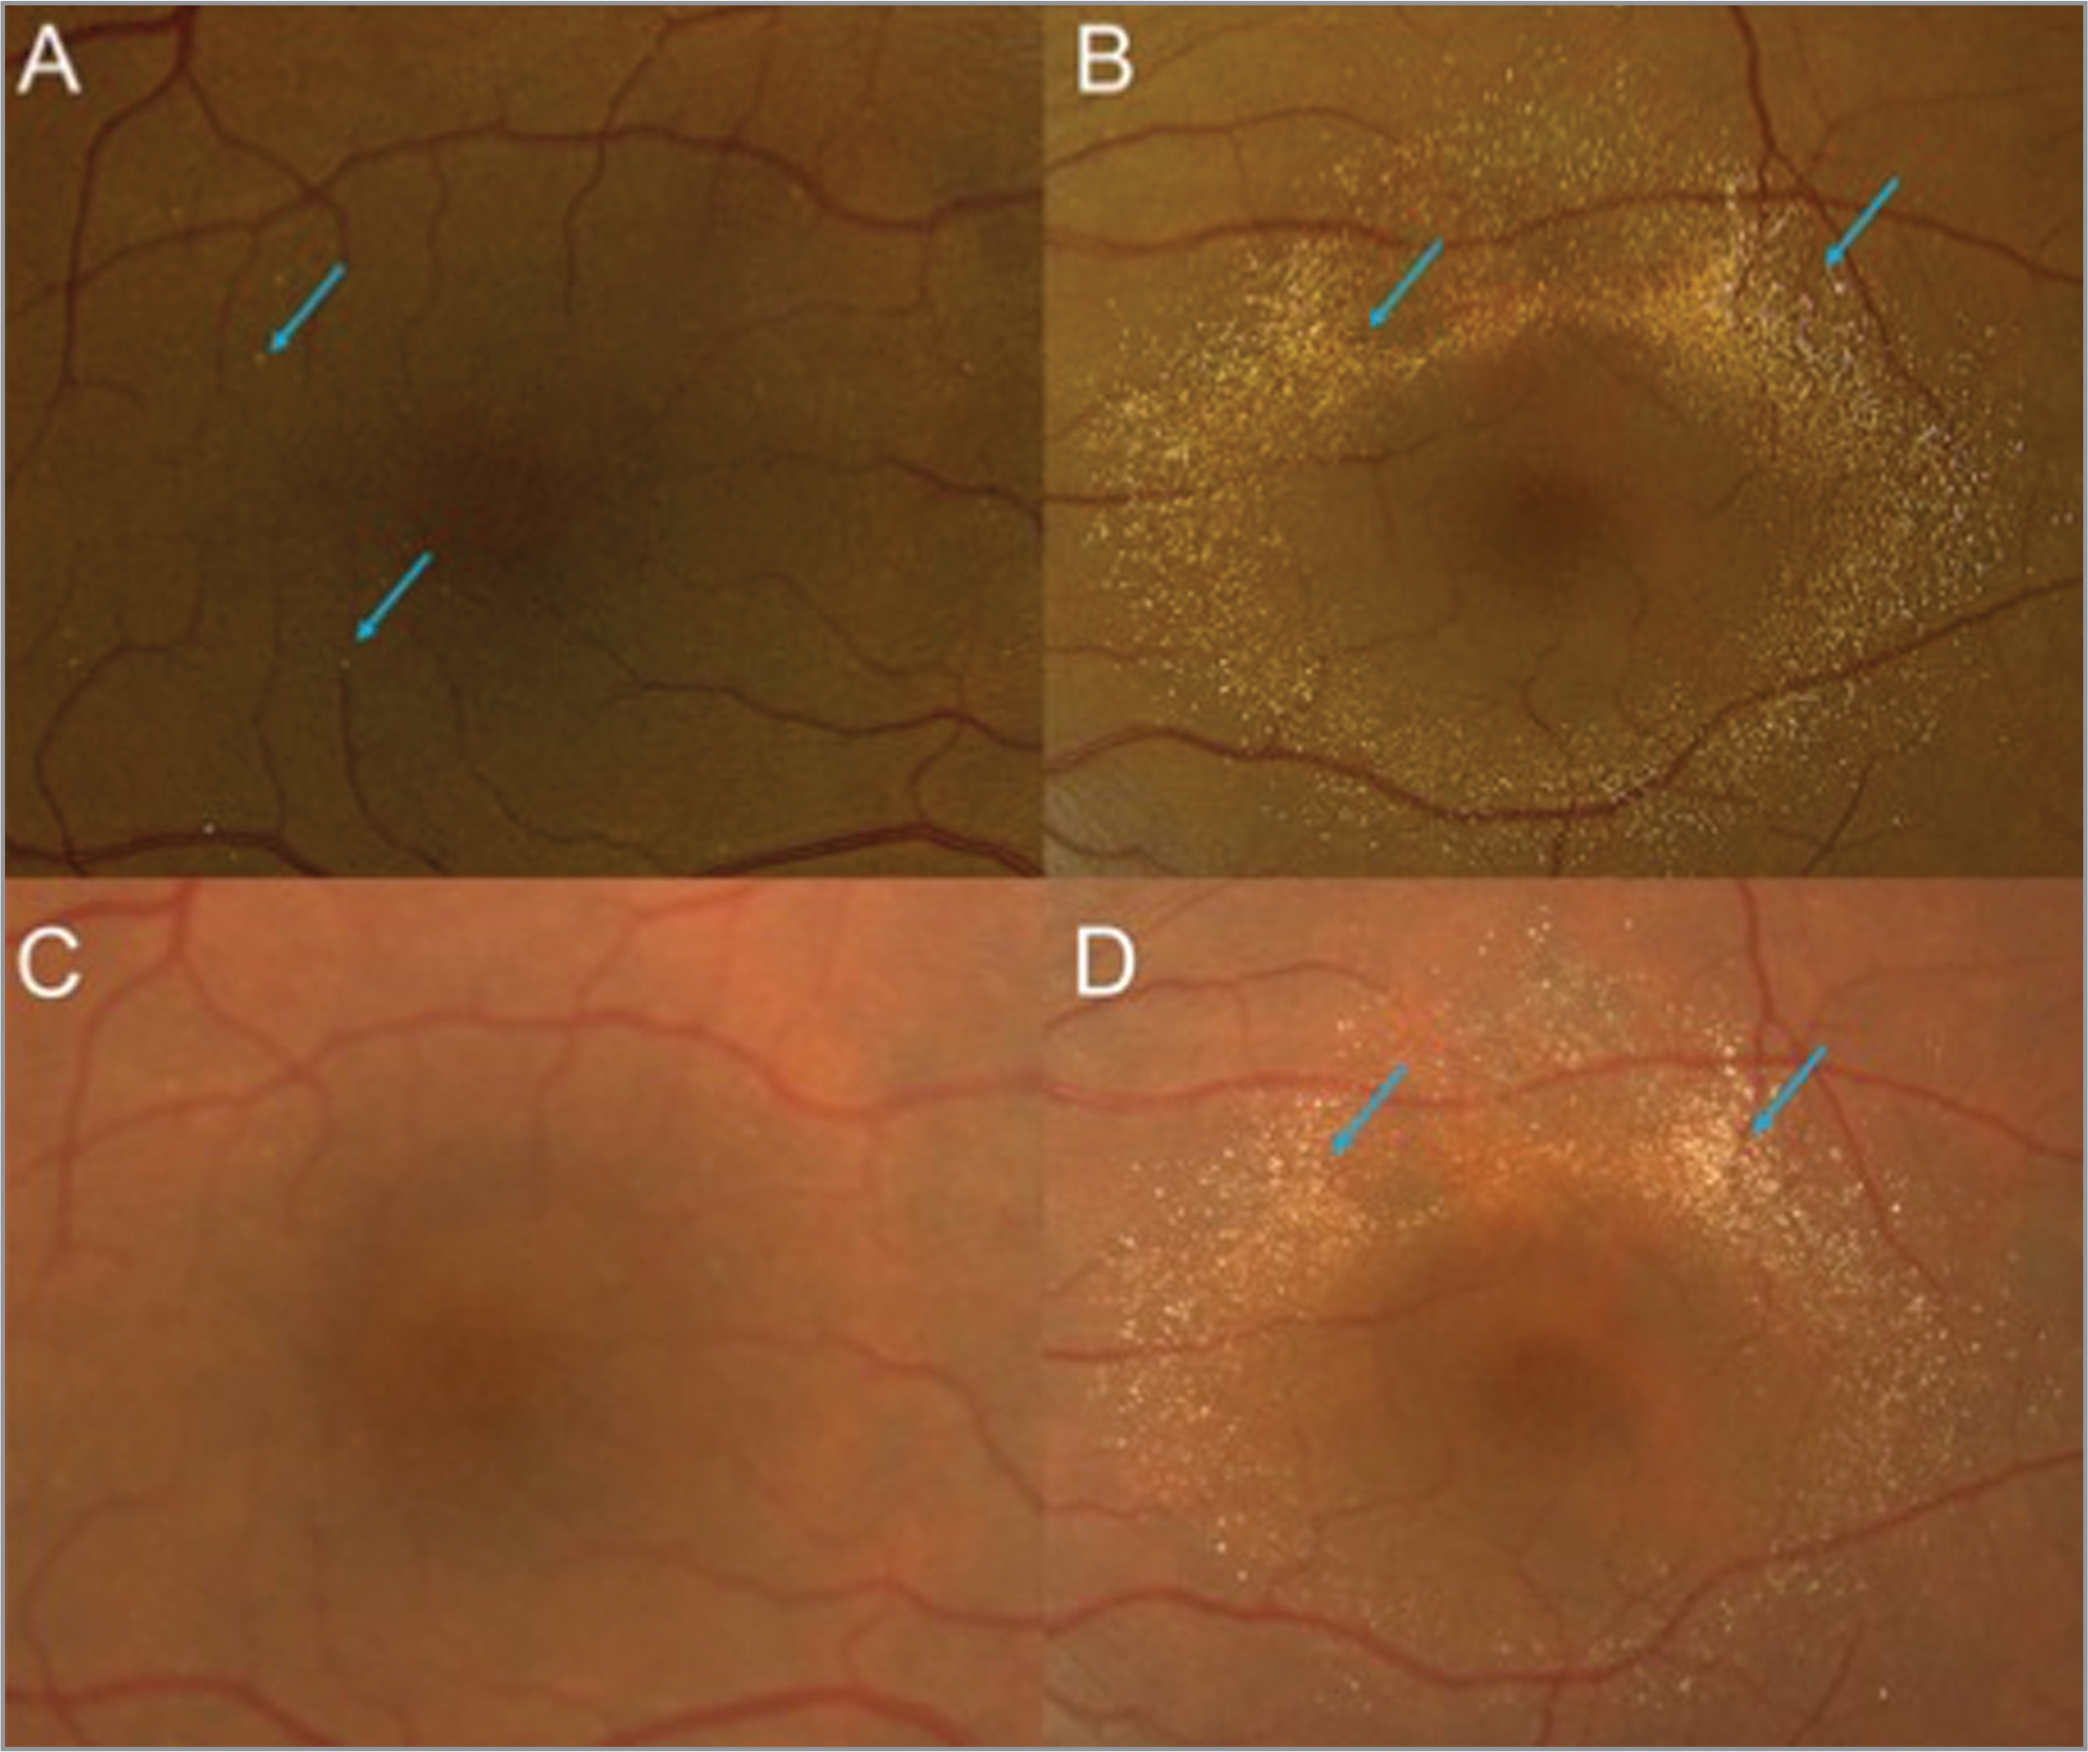 Fundus photography at presentation (A, B) showed a few crystals (blue arrows) in the right eye (A). However, the left eye had a circinate pattern of crystalline retinopathy limited to the macula (B). Fundus photography 4 years later (C, D) revealed that although the right eye had significantly improved, the cathaxanthin crystalline retinopathy (blue arrow) was persistent but the number of crystals had decreased in the left eye (D) compared to presentation.